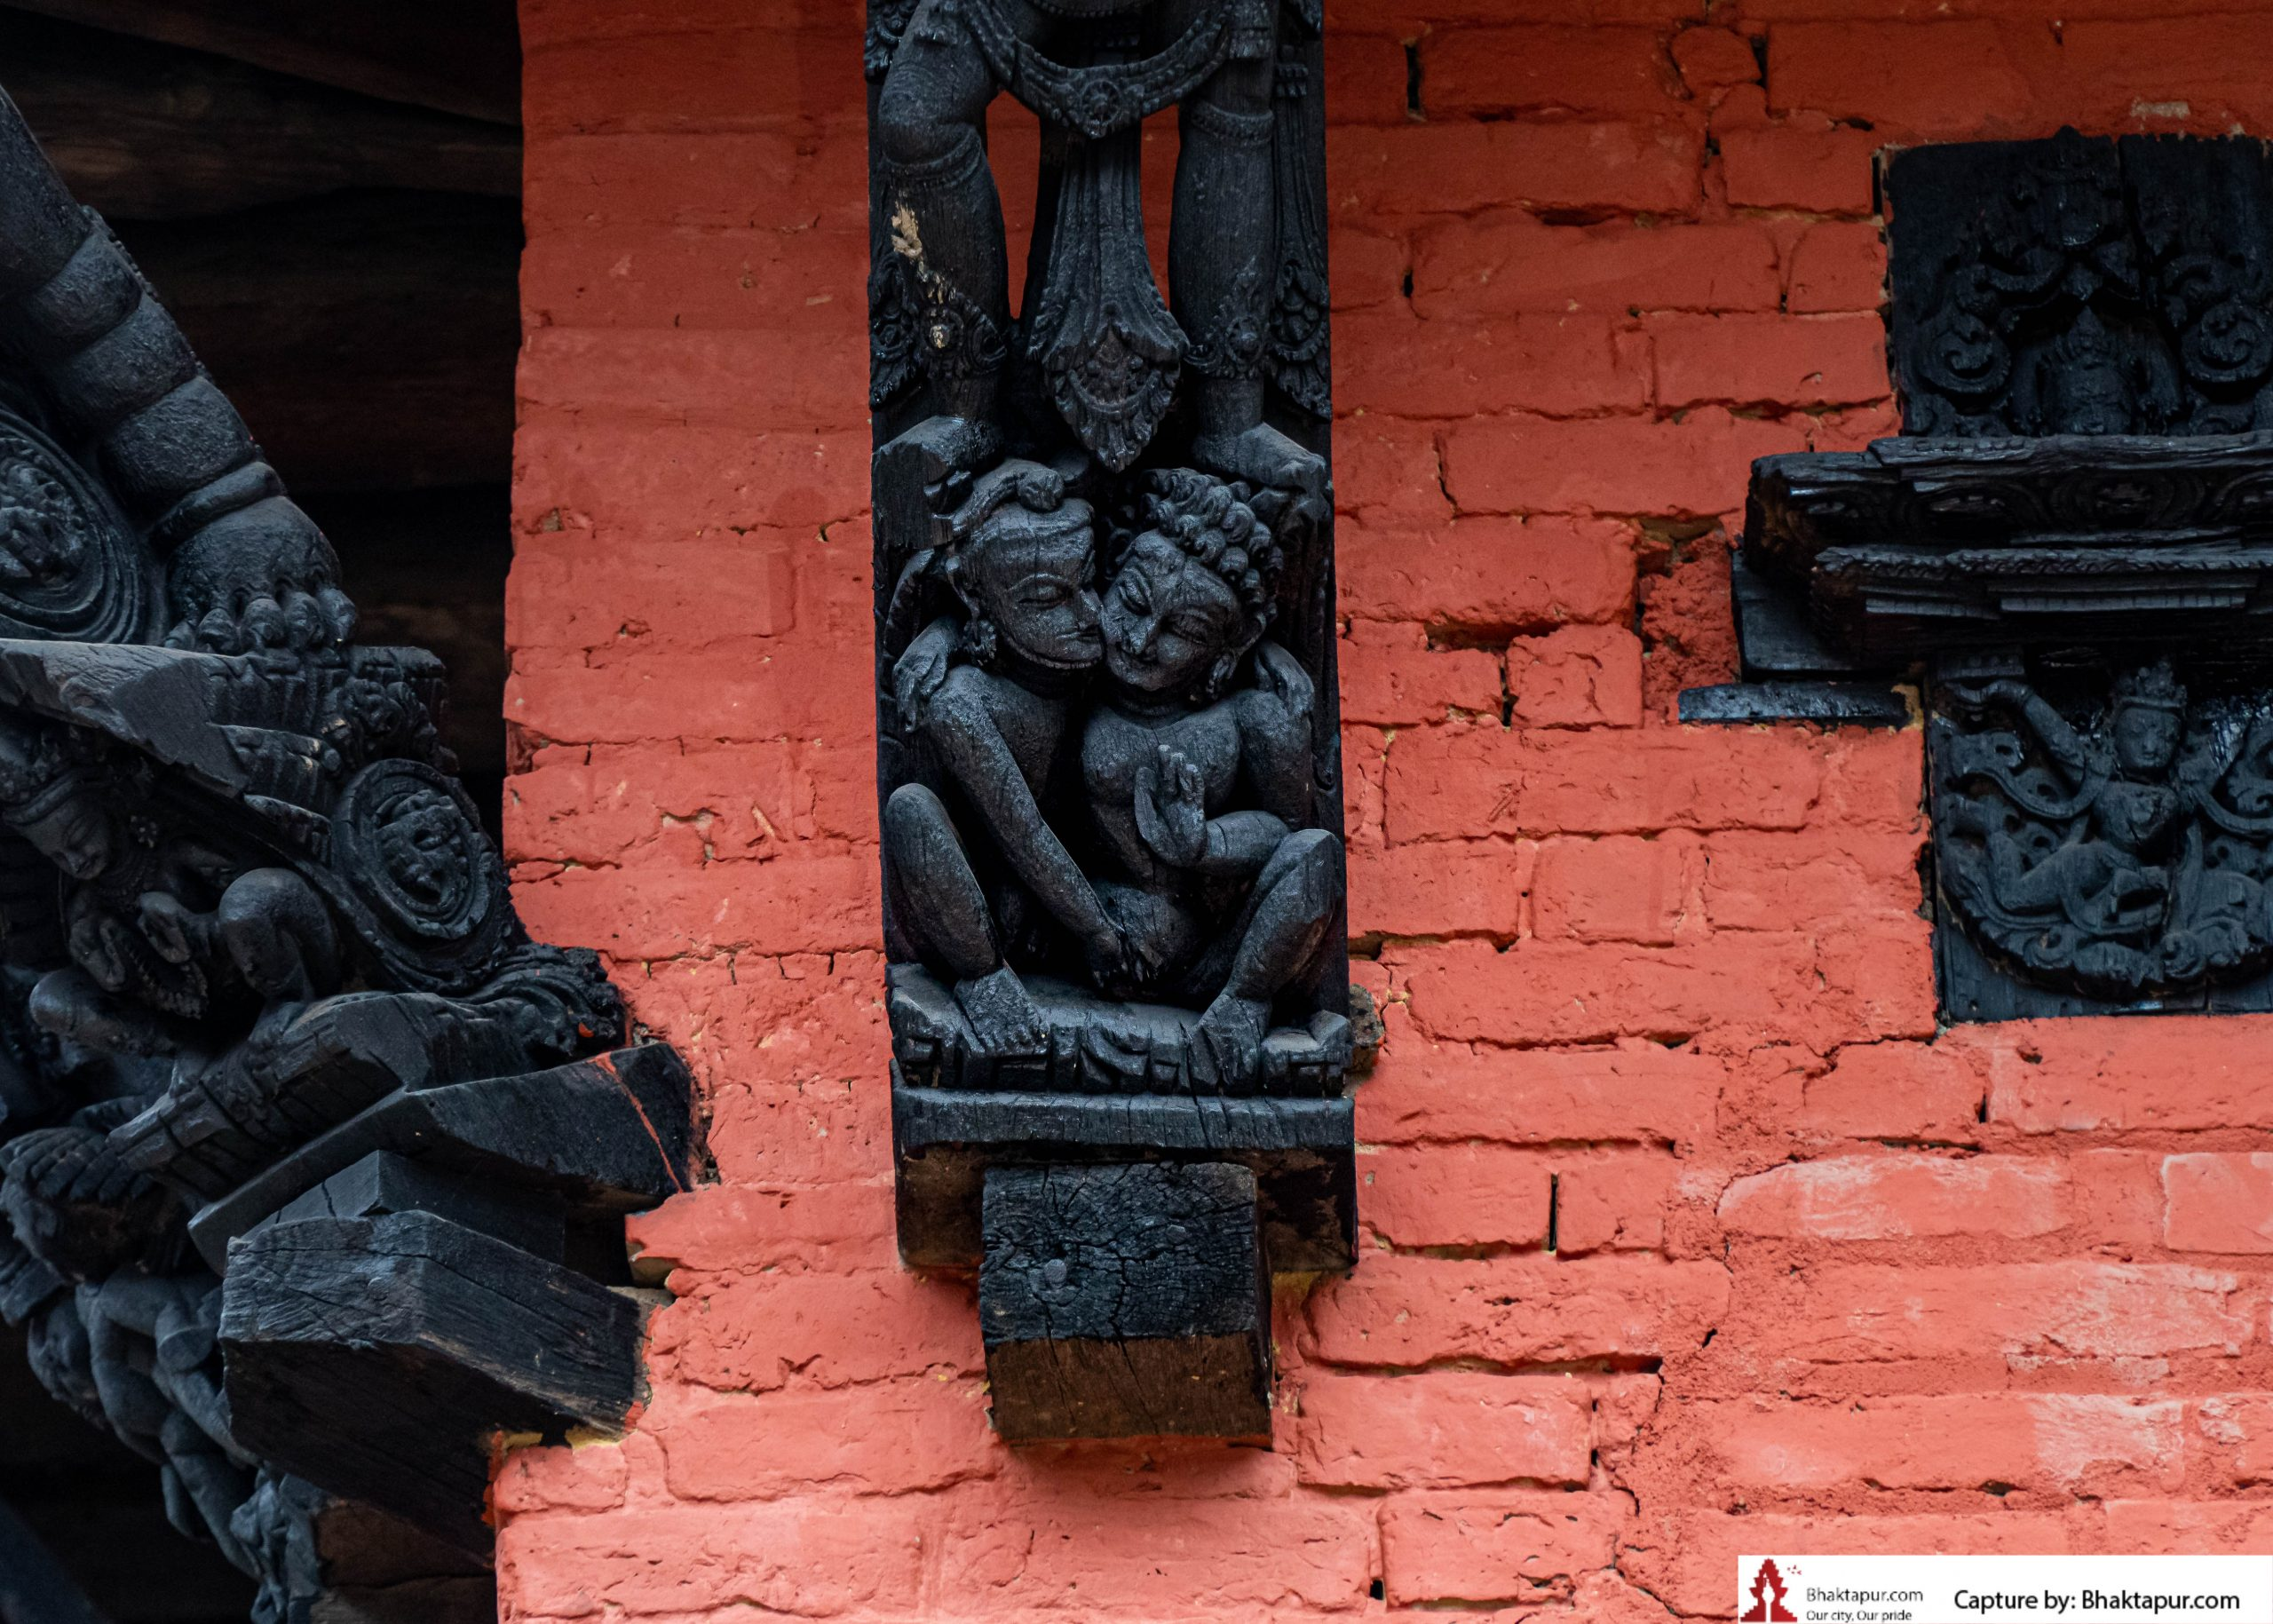 https://www.bhaktapur.com/wp-content/uploads/2021/08/erotic-carving-86-of-137-scaled.jpg